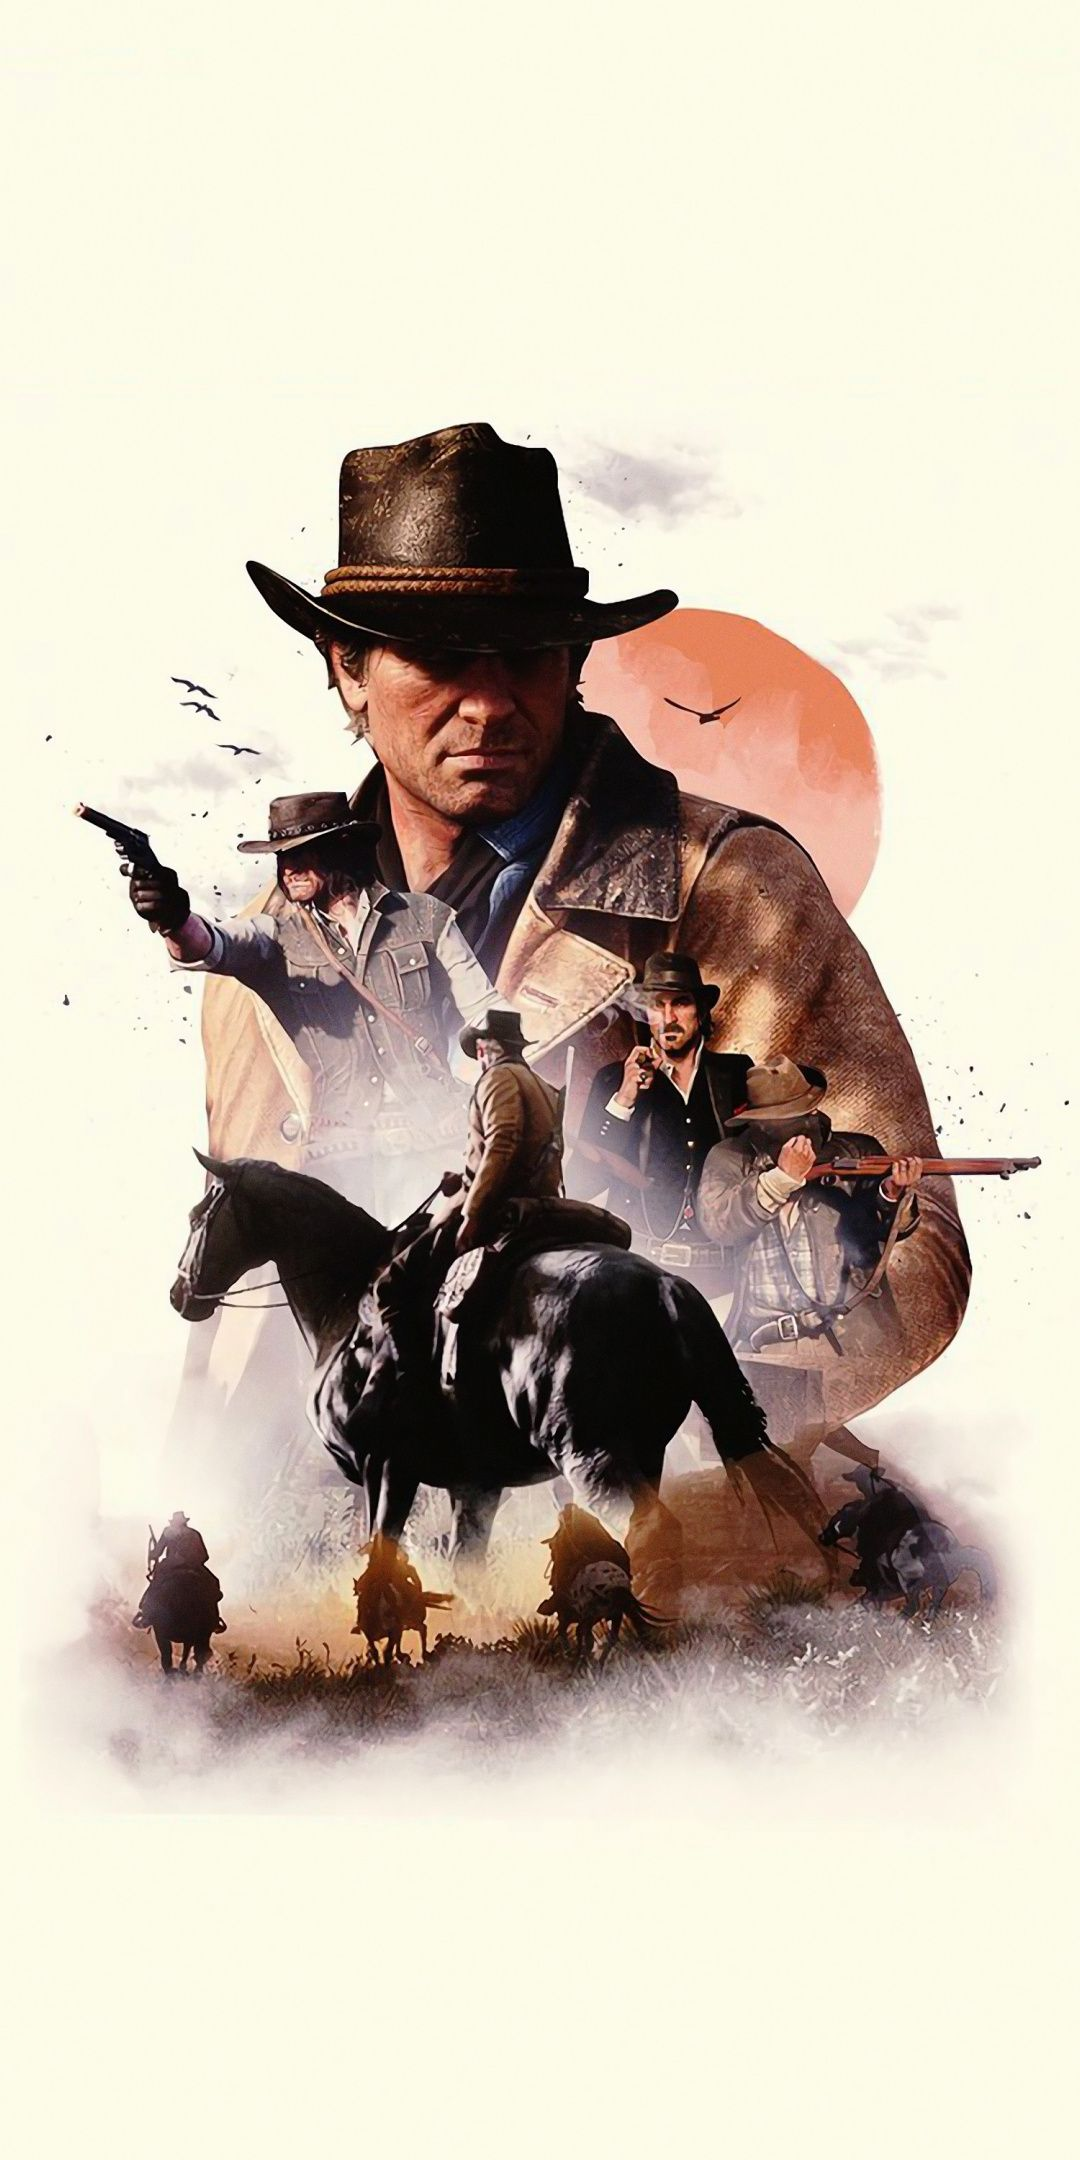 Video Game Poster Red Dead Redemption 2 Minimal 1080x2160 Wallpaper Red Dead Redemption Artwork Red Dead Redemption Art Red Dead Redemption Ii